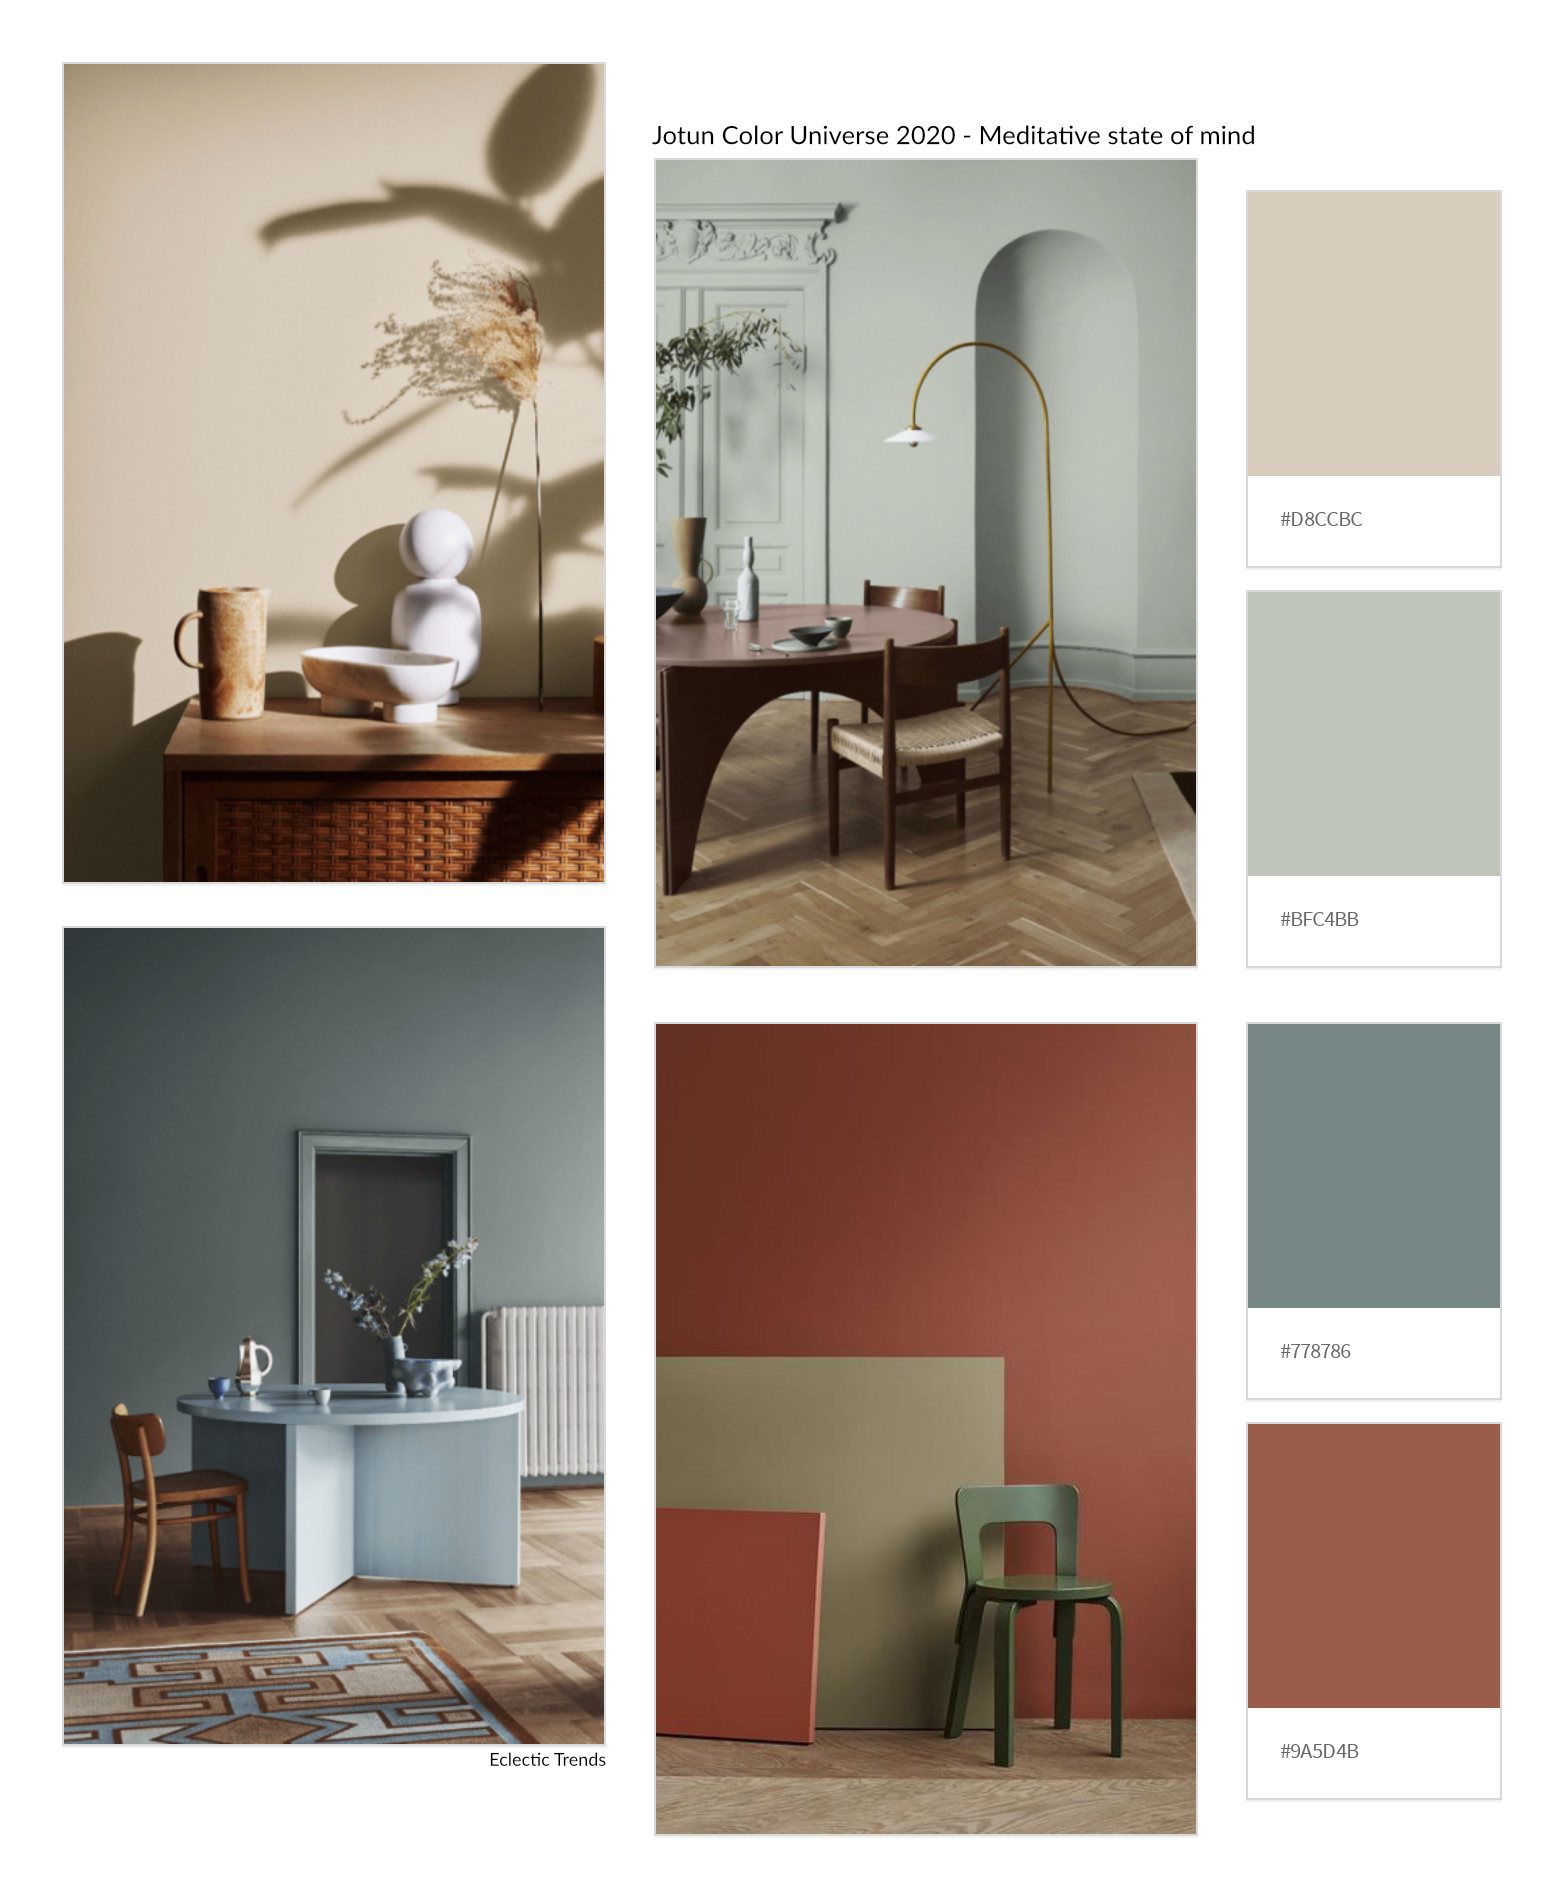 The best of 2020 - Color Universe 2020 Jotun Meditative State Of Mind | Eclectic Trends